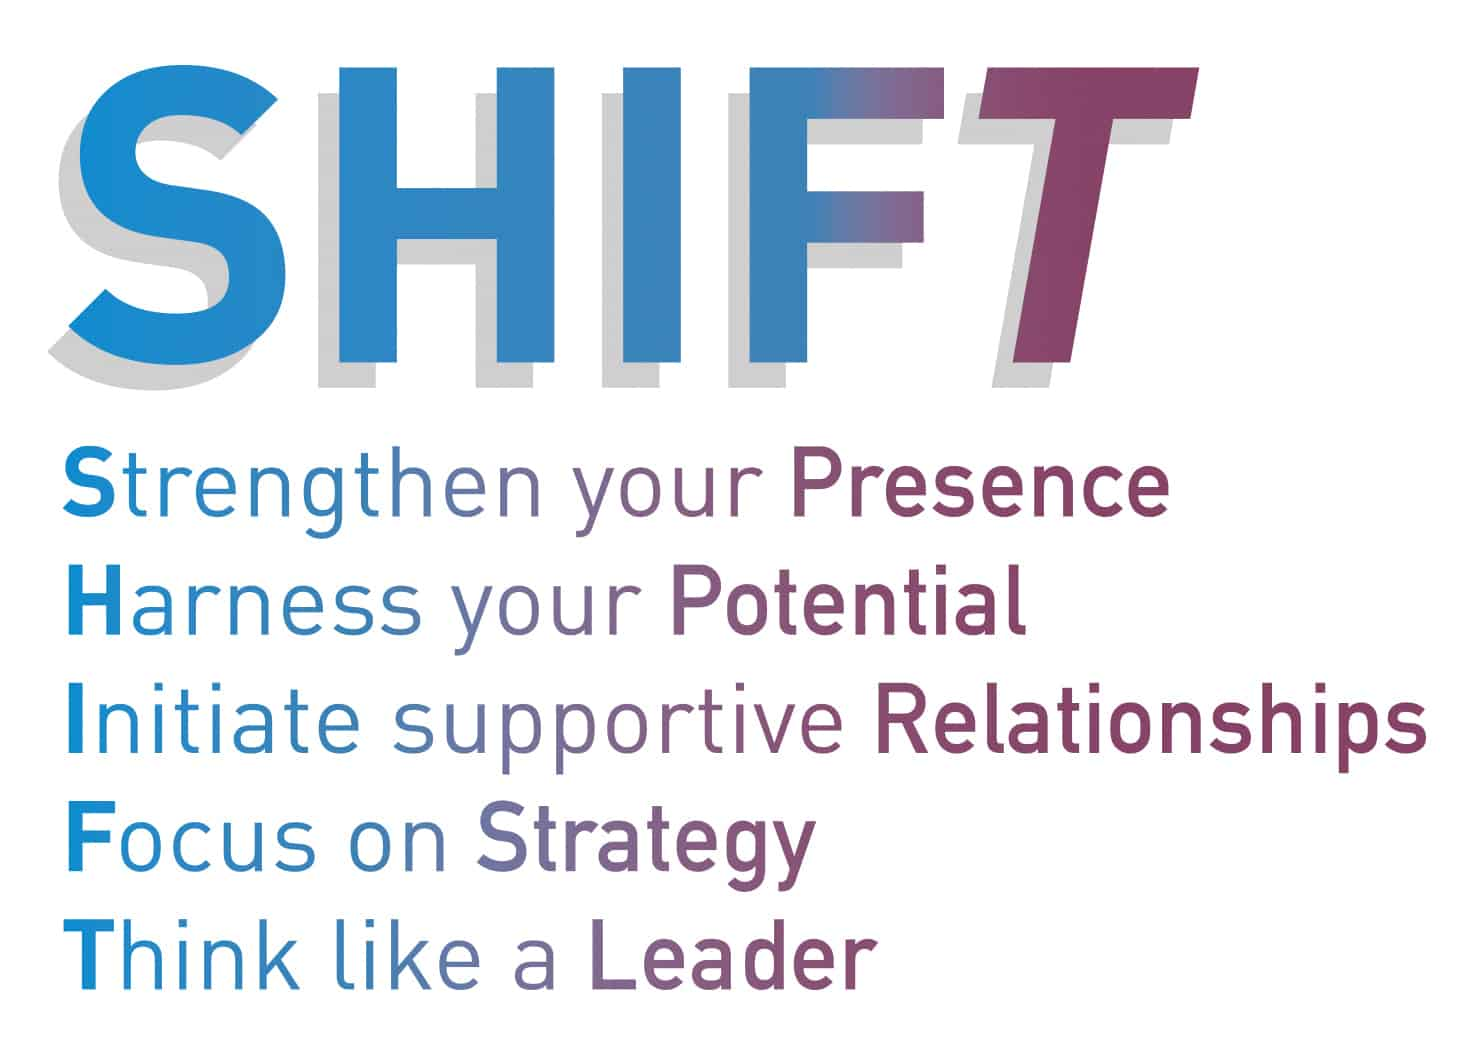 shift thinking choices there is one full day module per month covering each element of the framework across the five months there is also an initial half day launch and goal